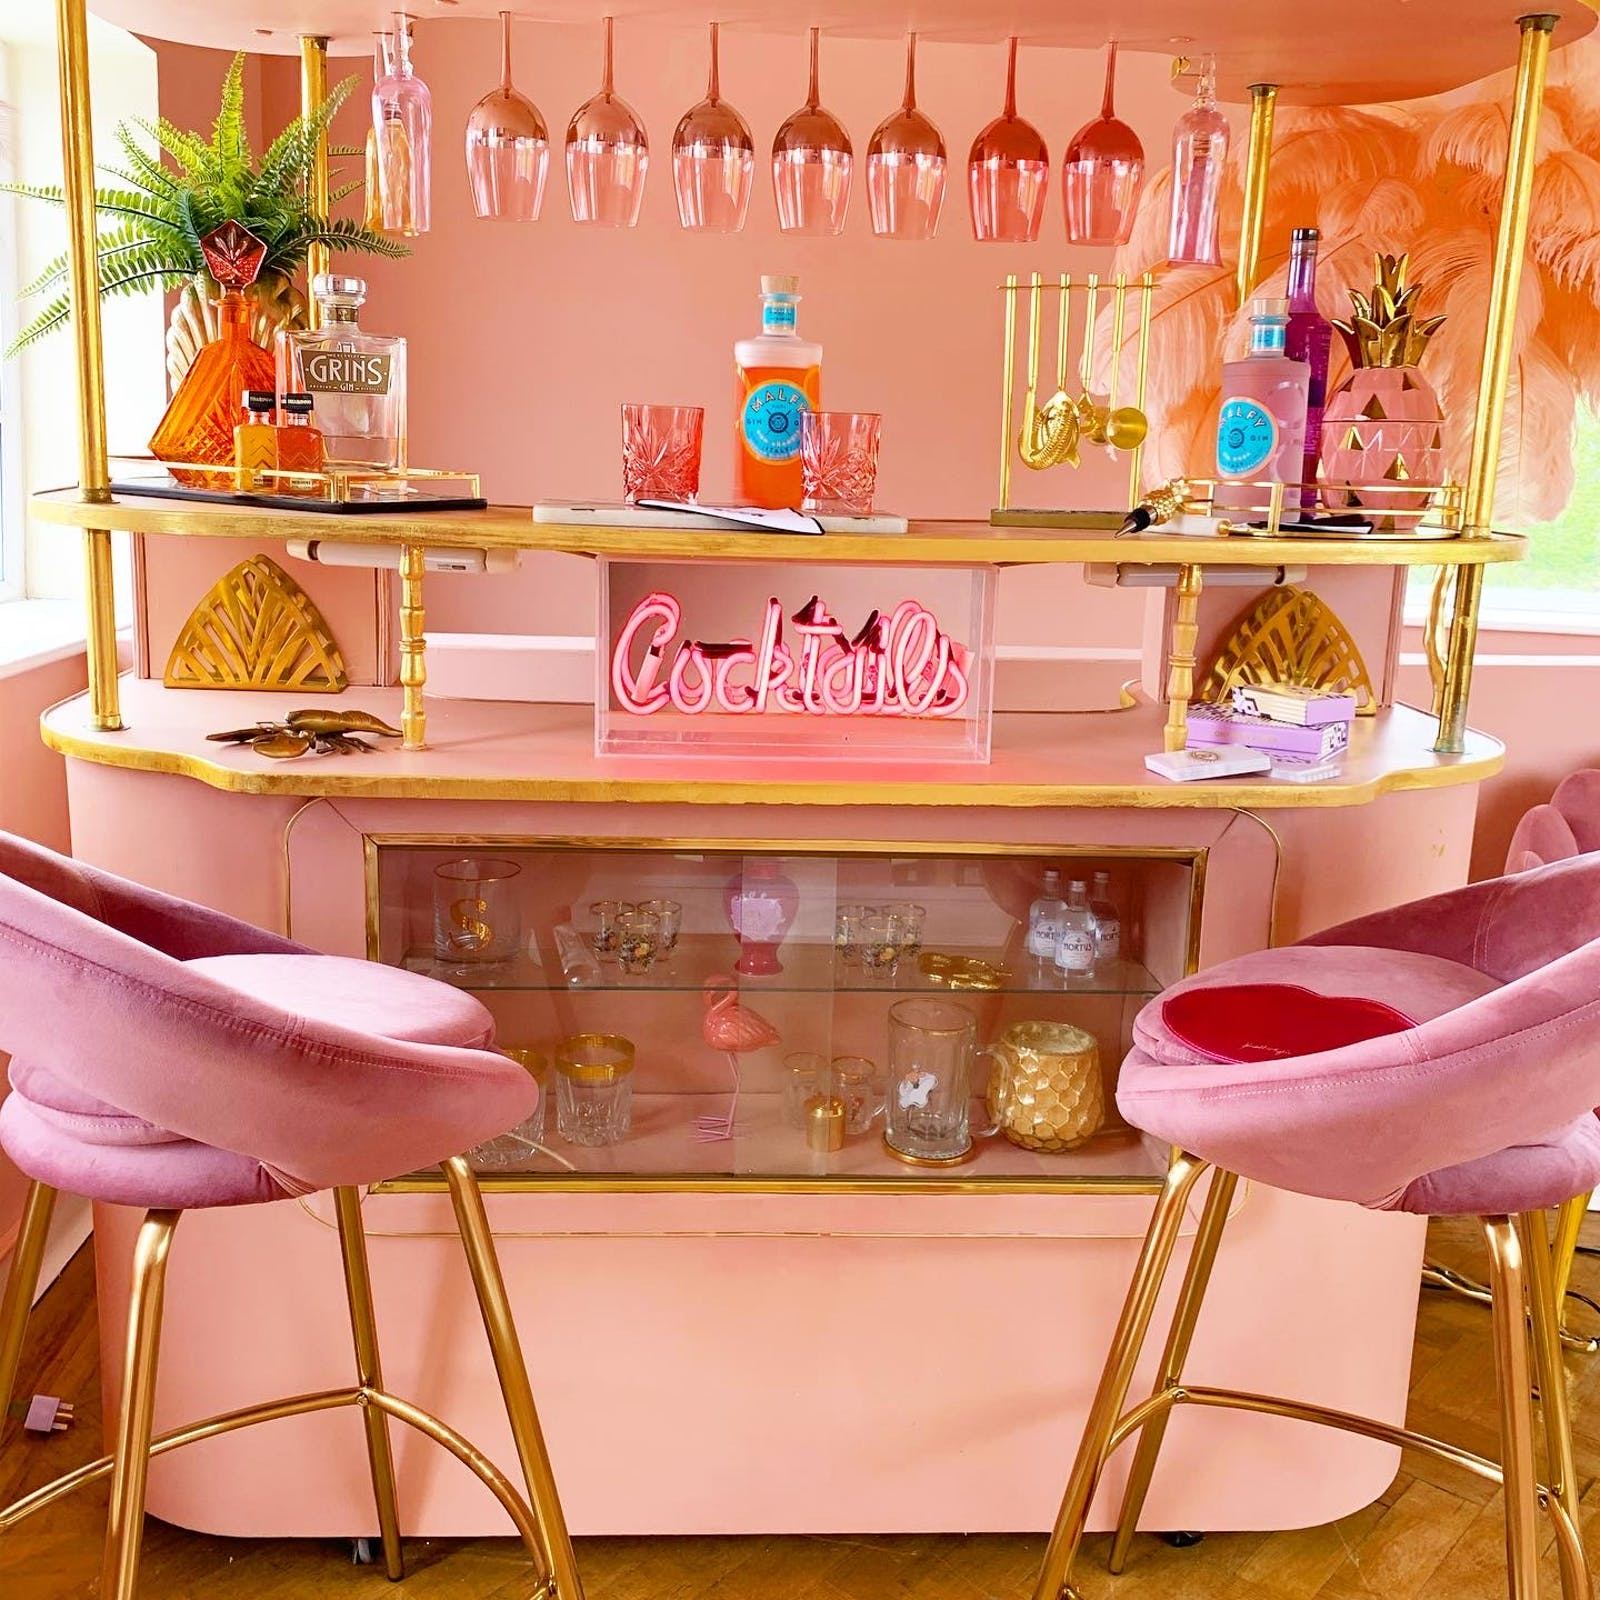 Retro-inspired cocktail bar in pink with plush chairs